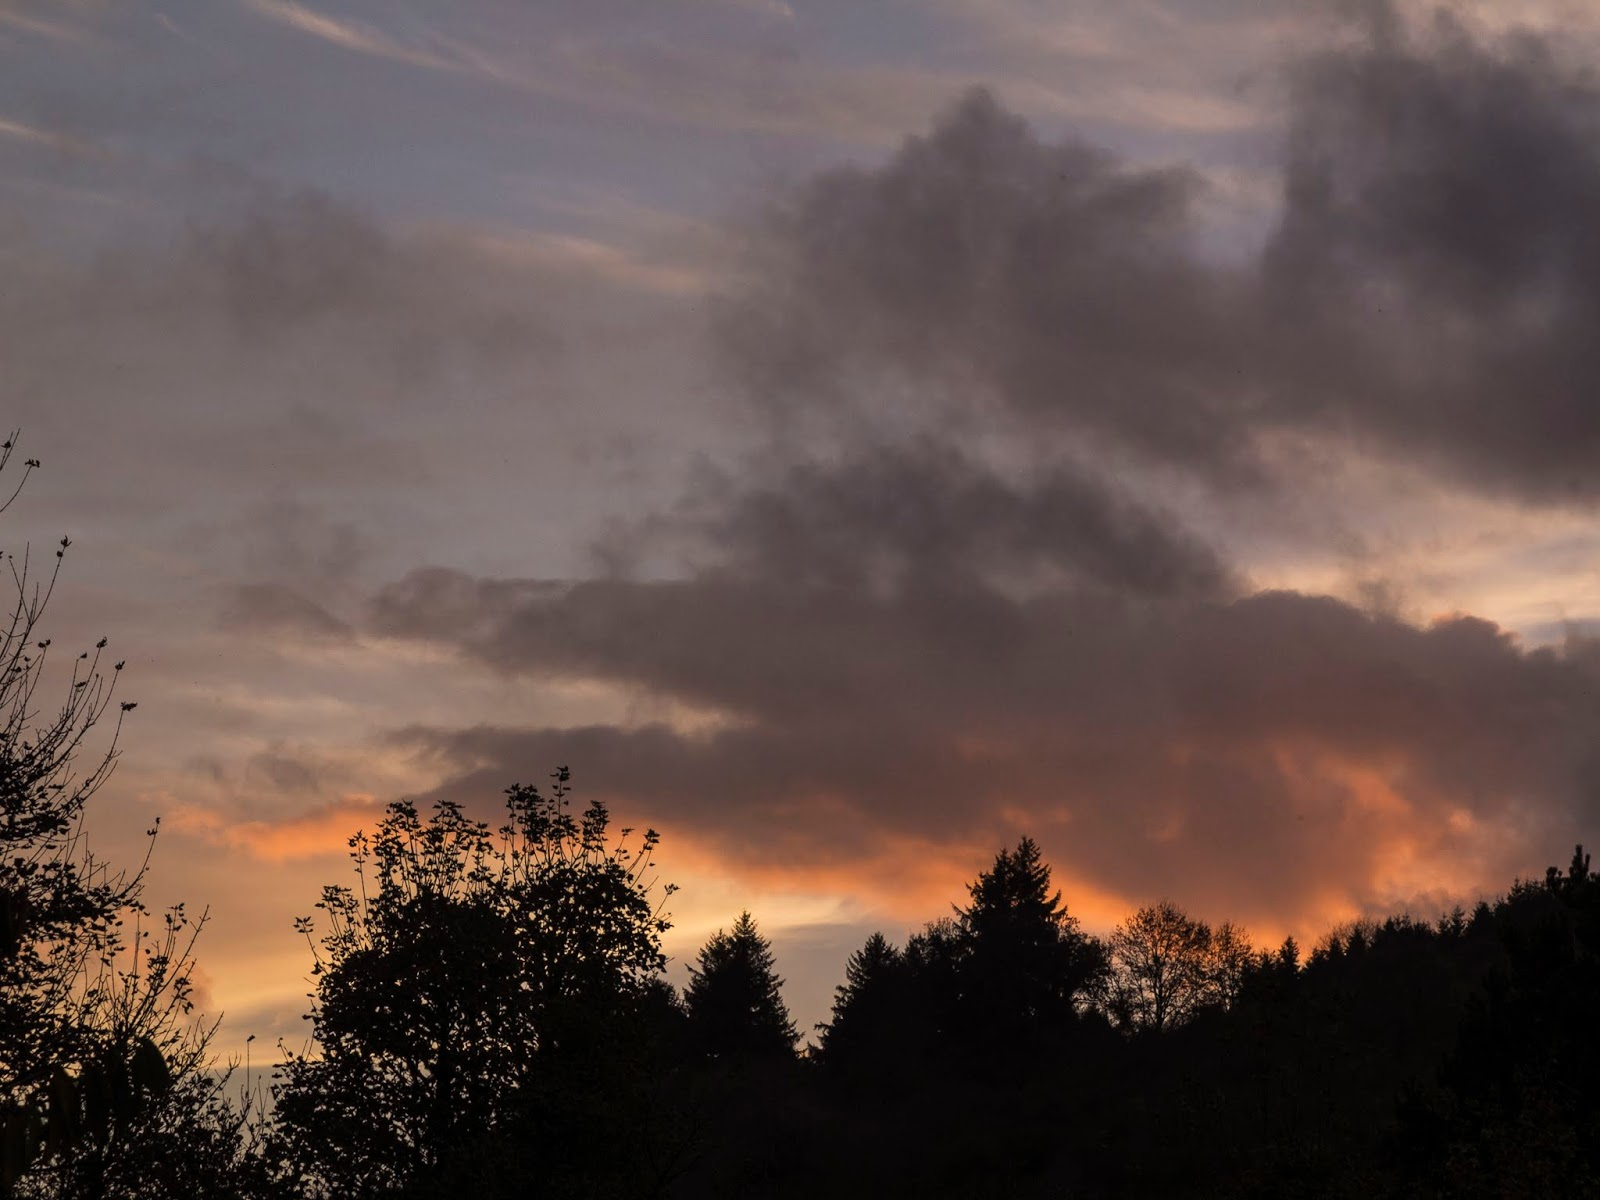 Sunset clouds over trees on a mountain side in North County Cork.